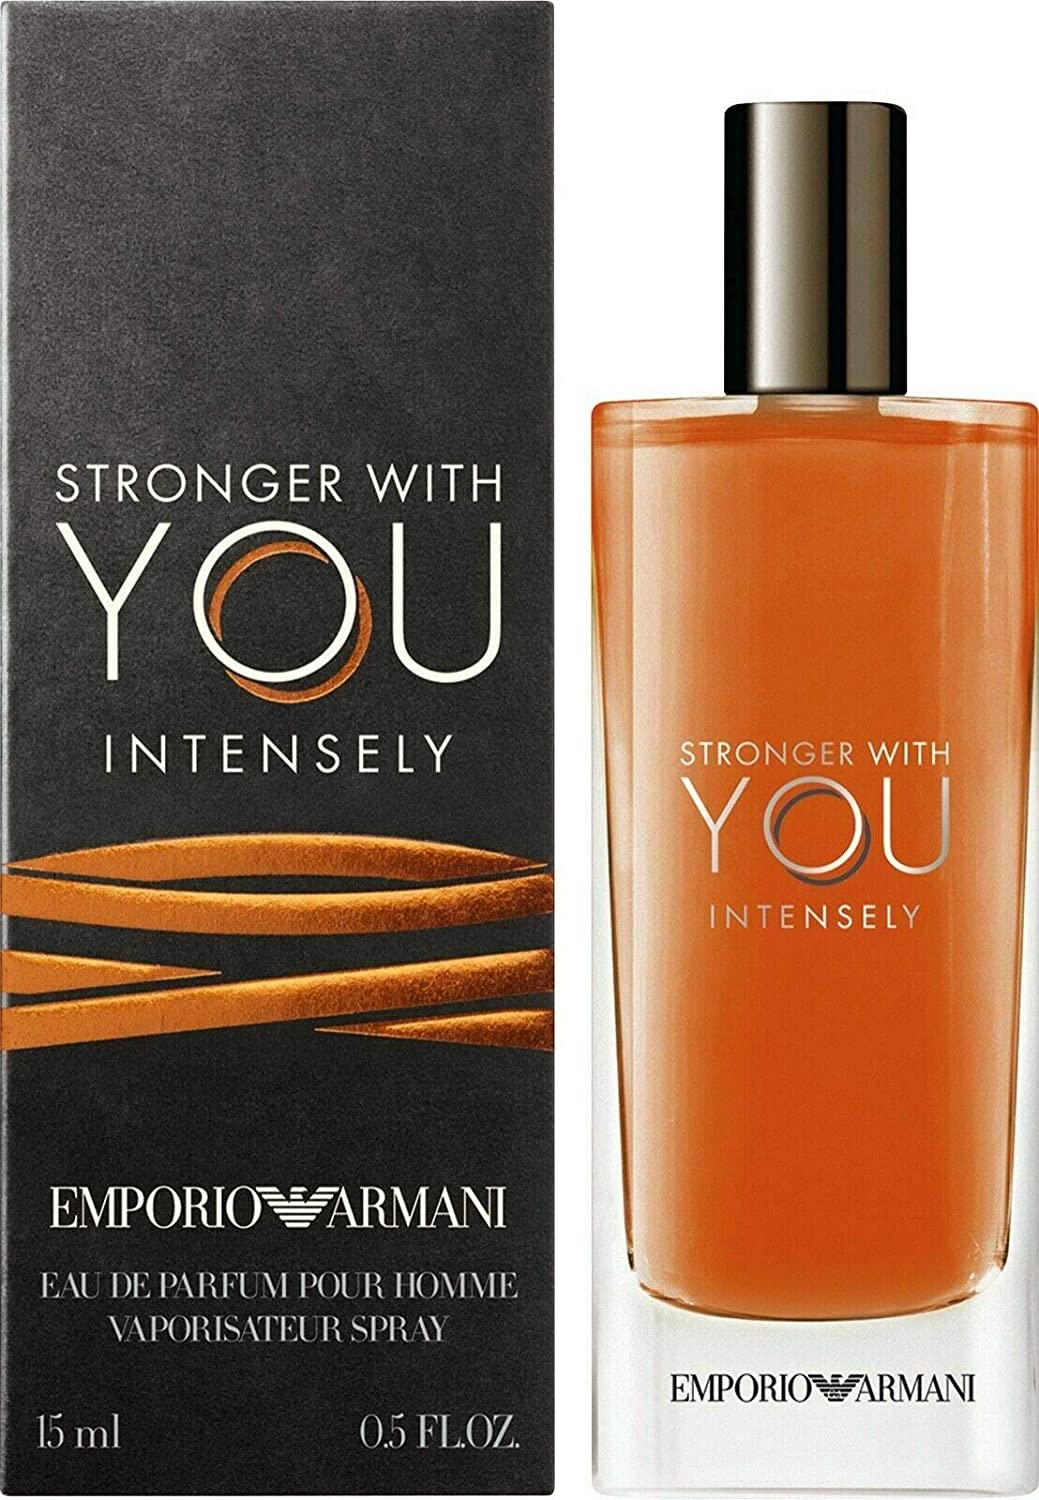 emporio armani parfum stronger with you